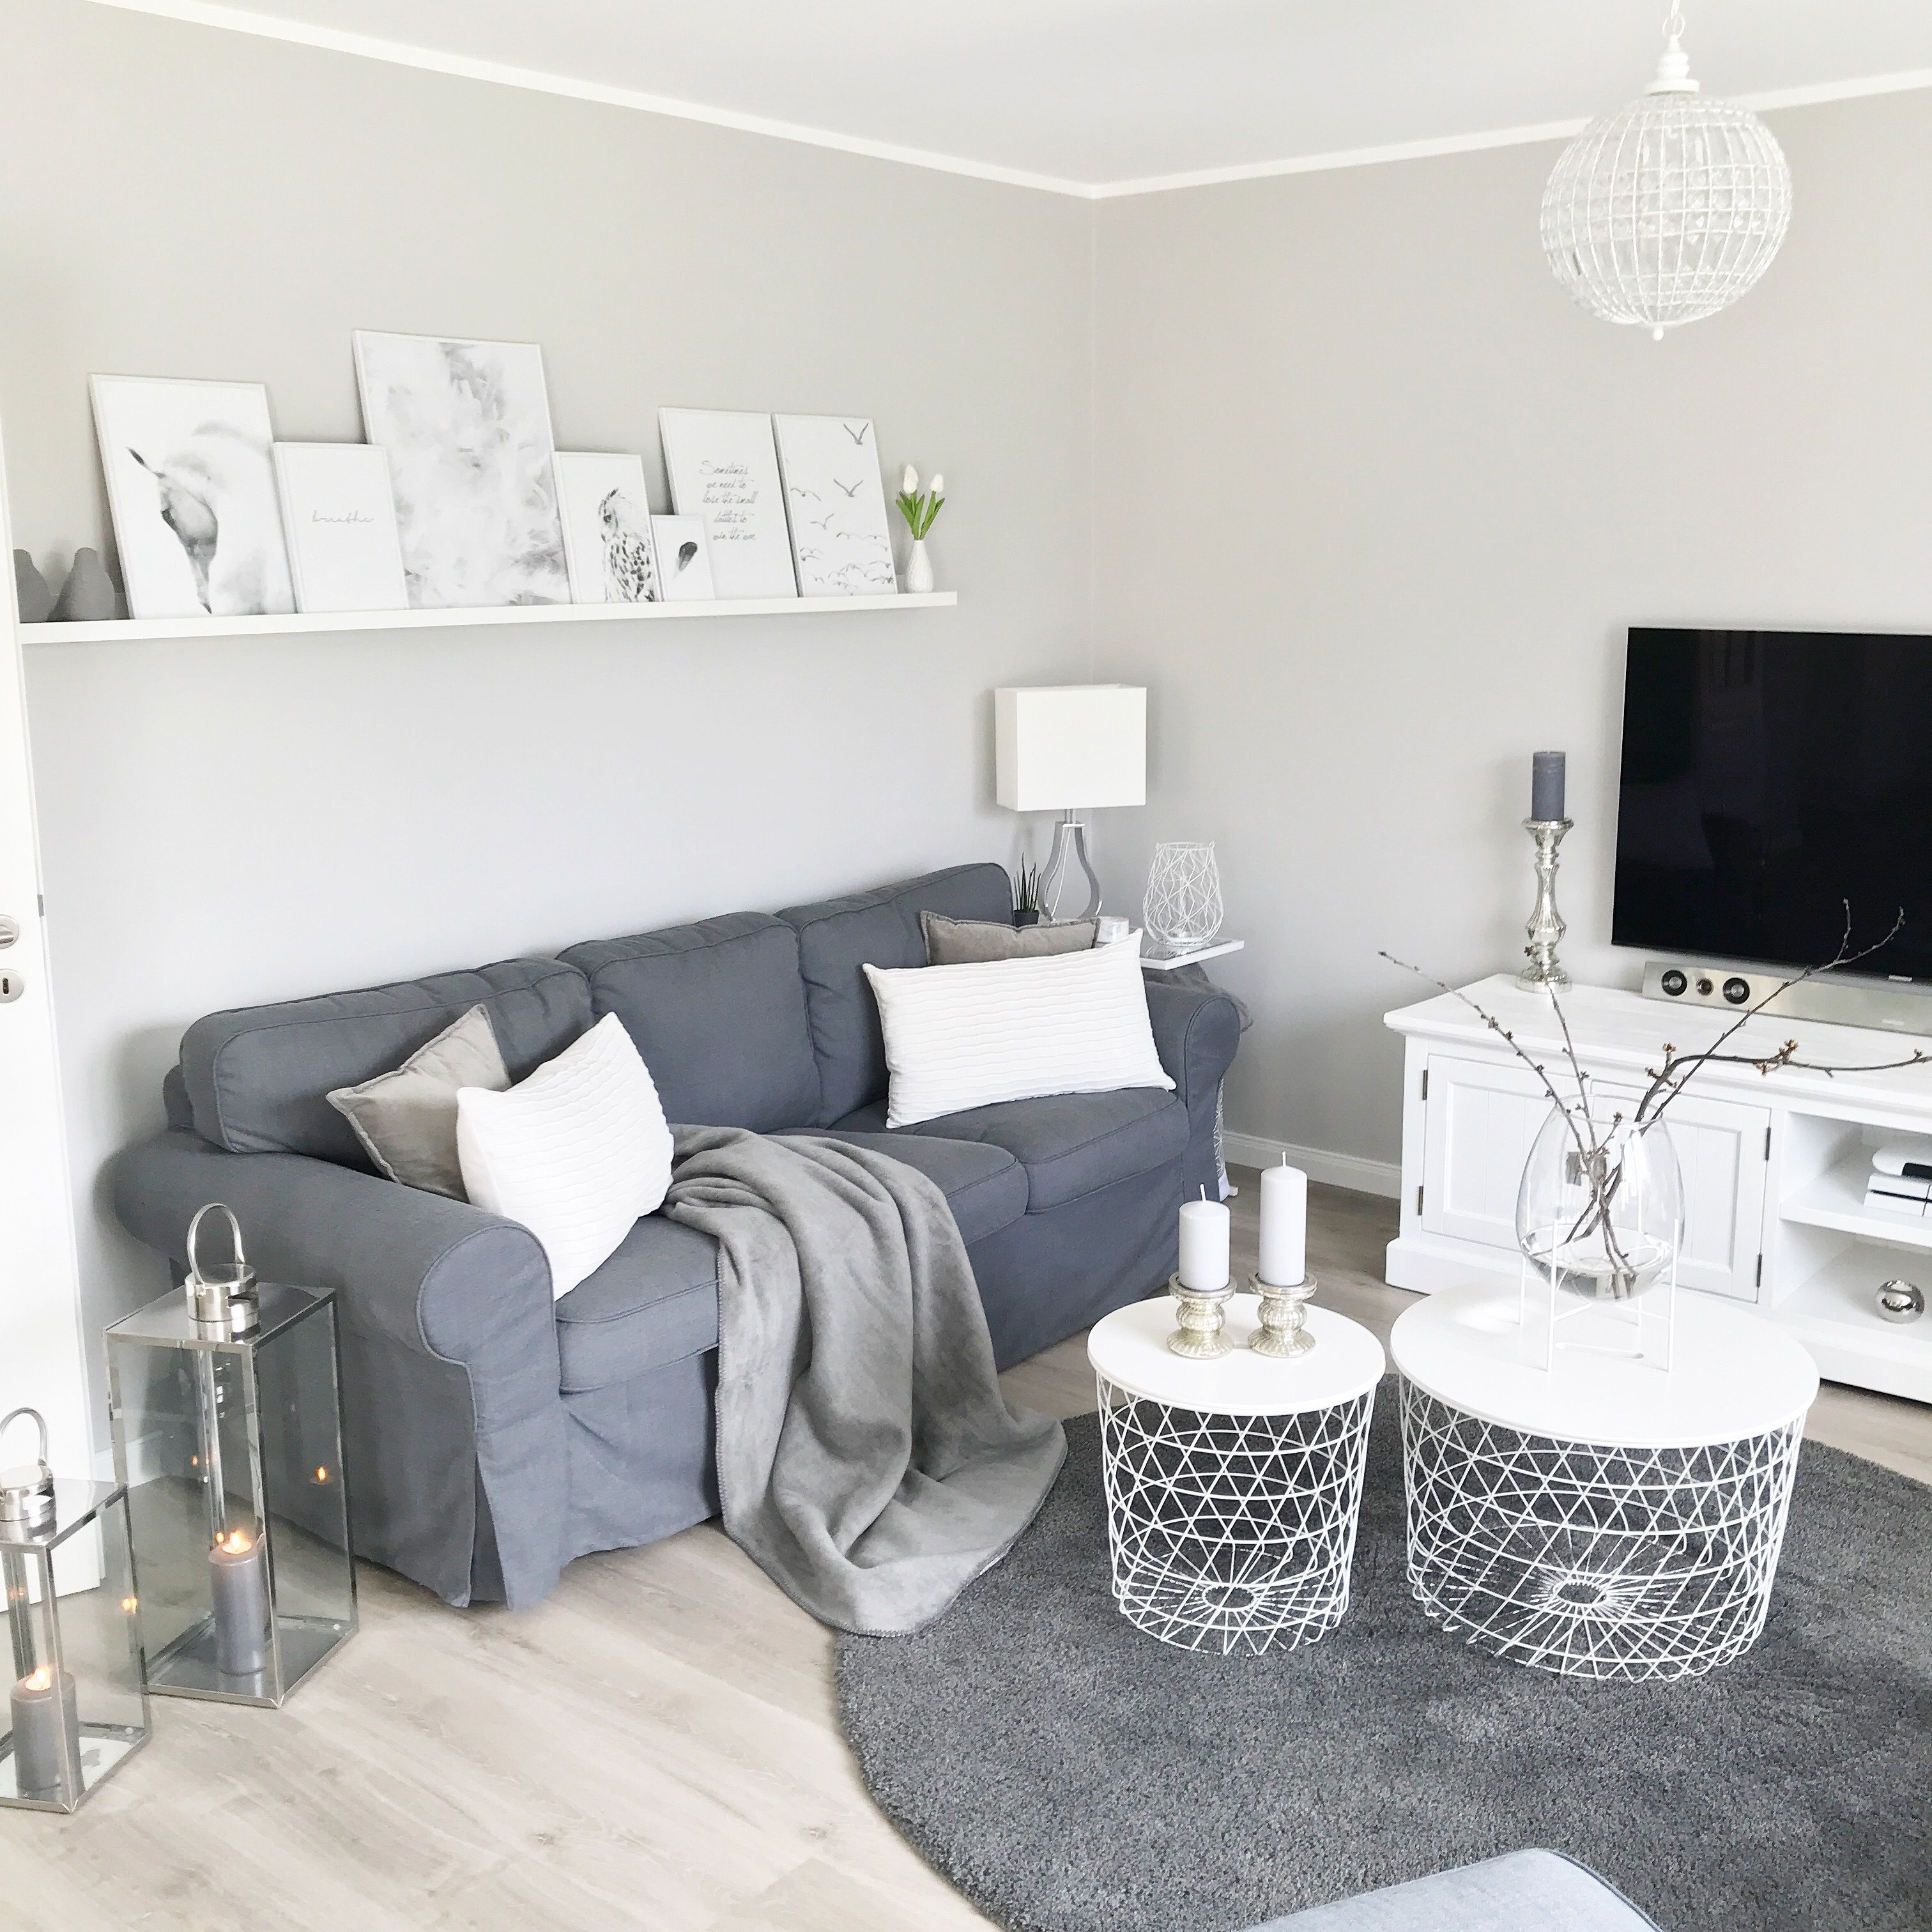 Instagram: wohn.emotion Nordichome whiteliving greyandwhite